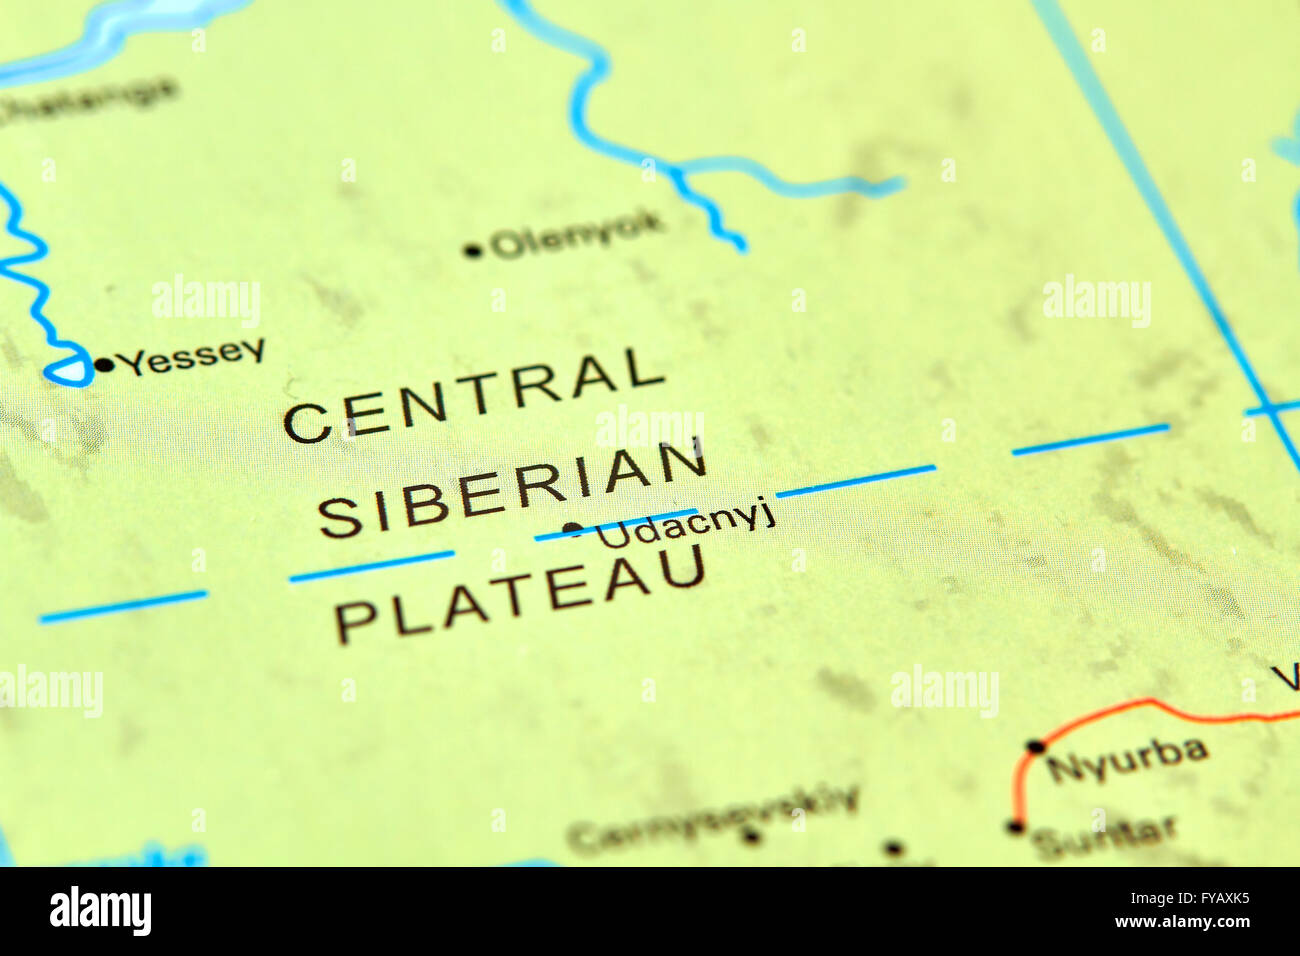 Central Siberian Plateau In Russia On The World Map Stock Photo